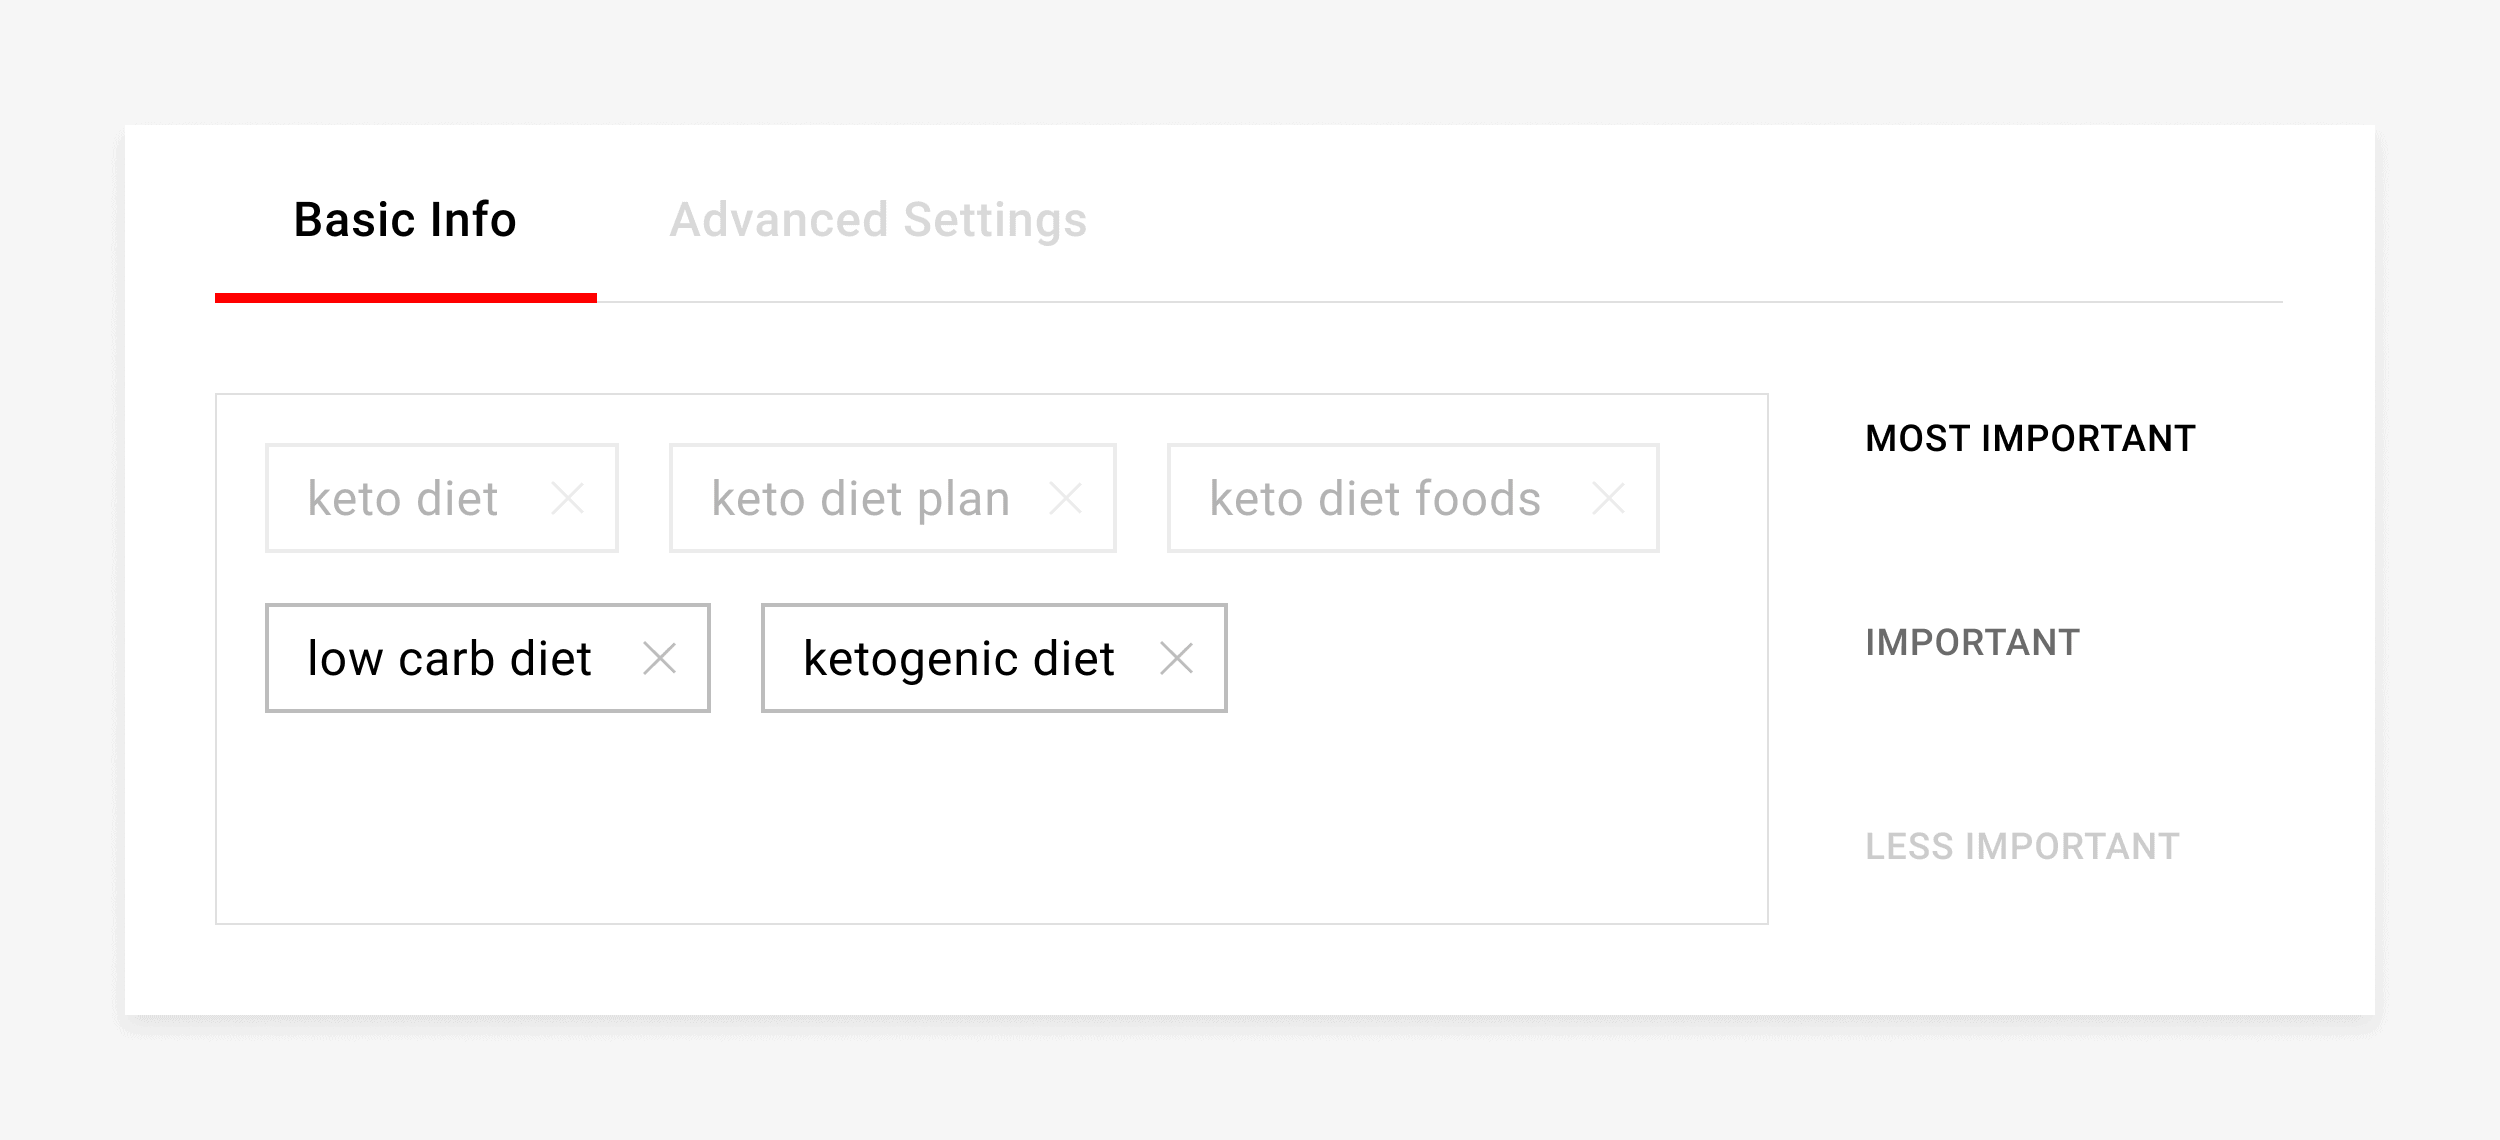 Add 2 more non-keyword video tags